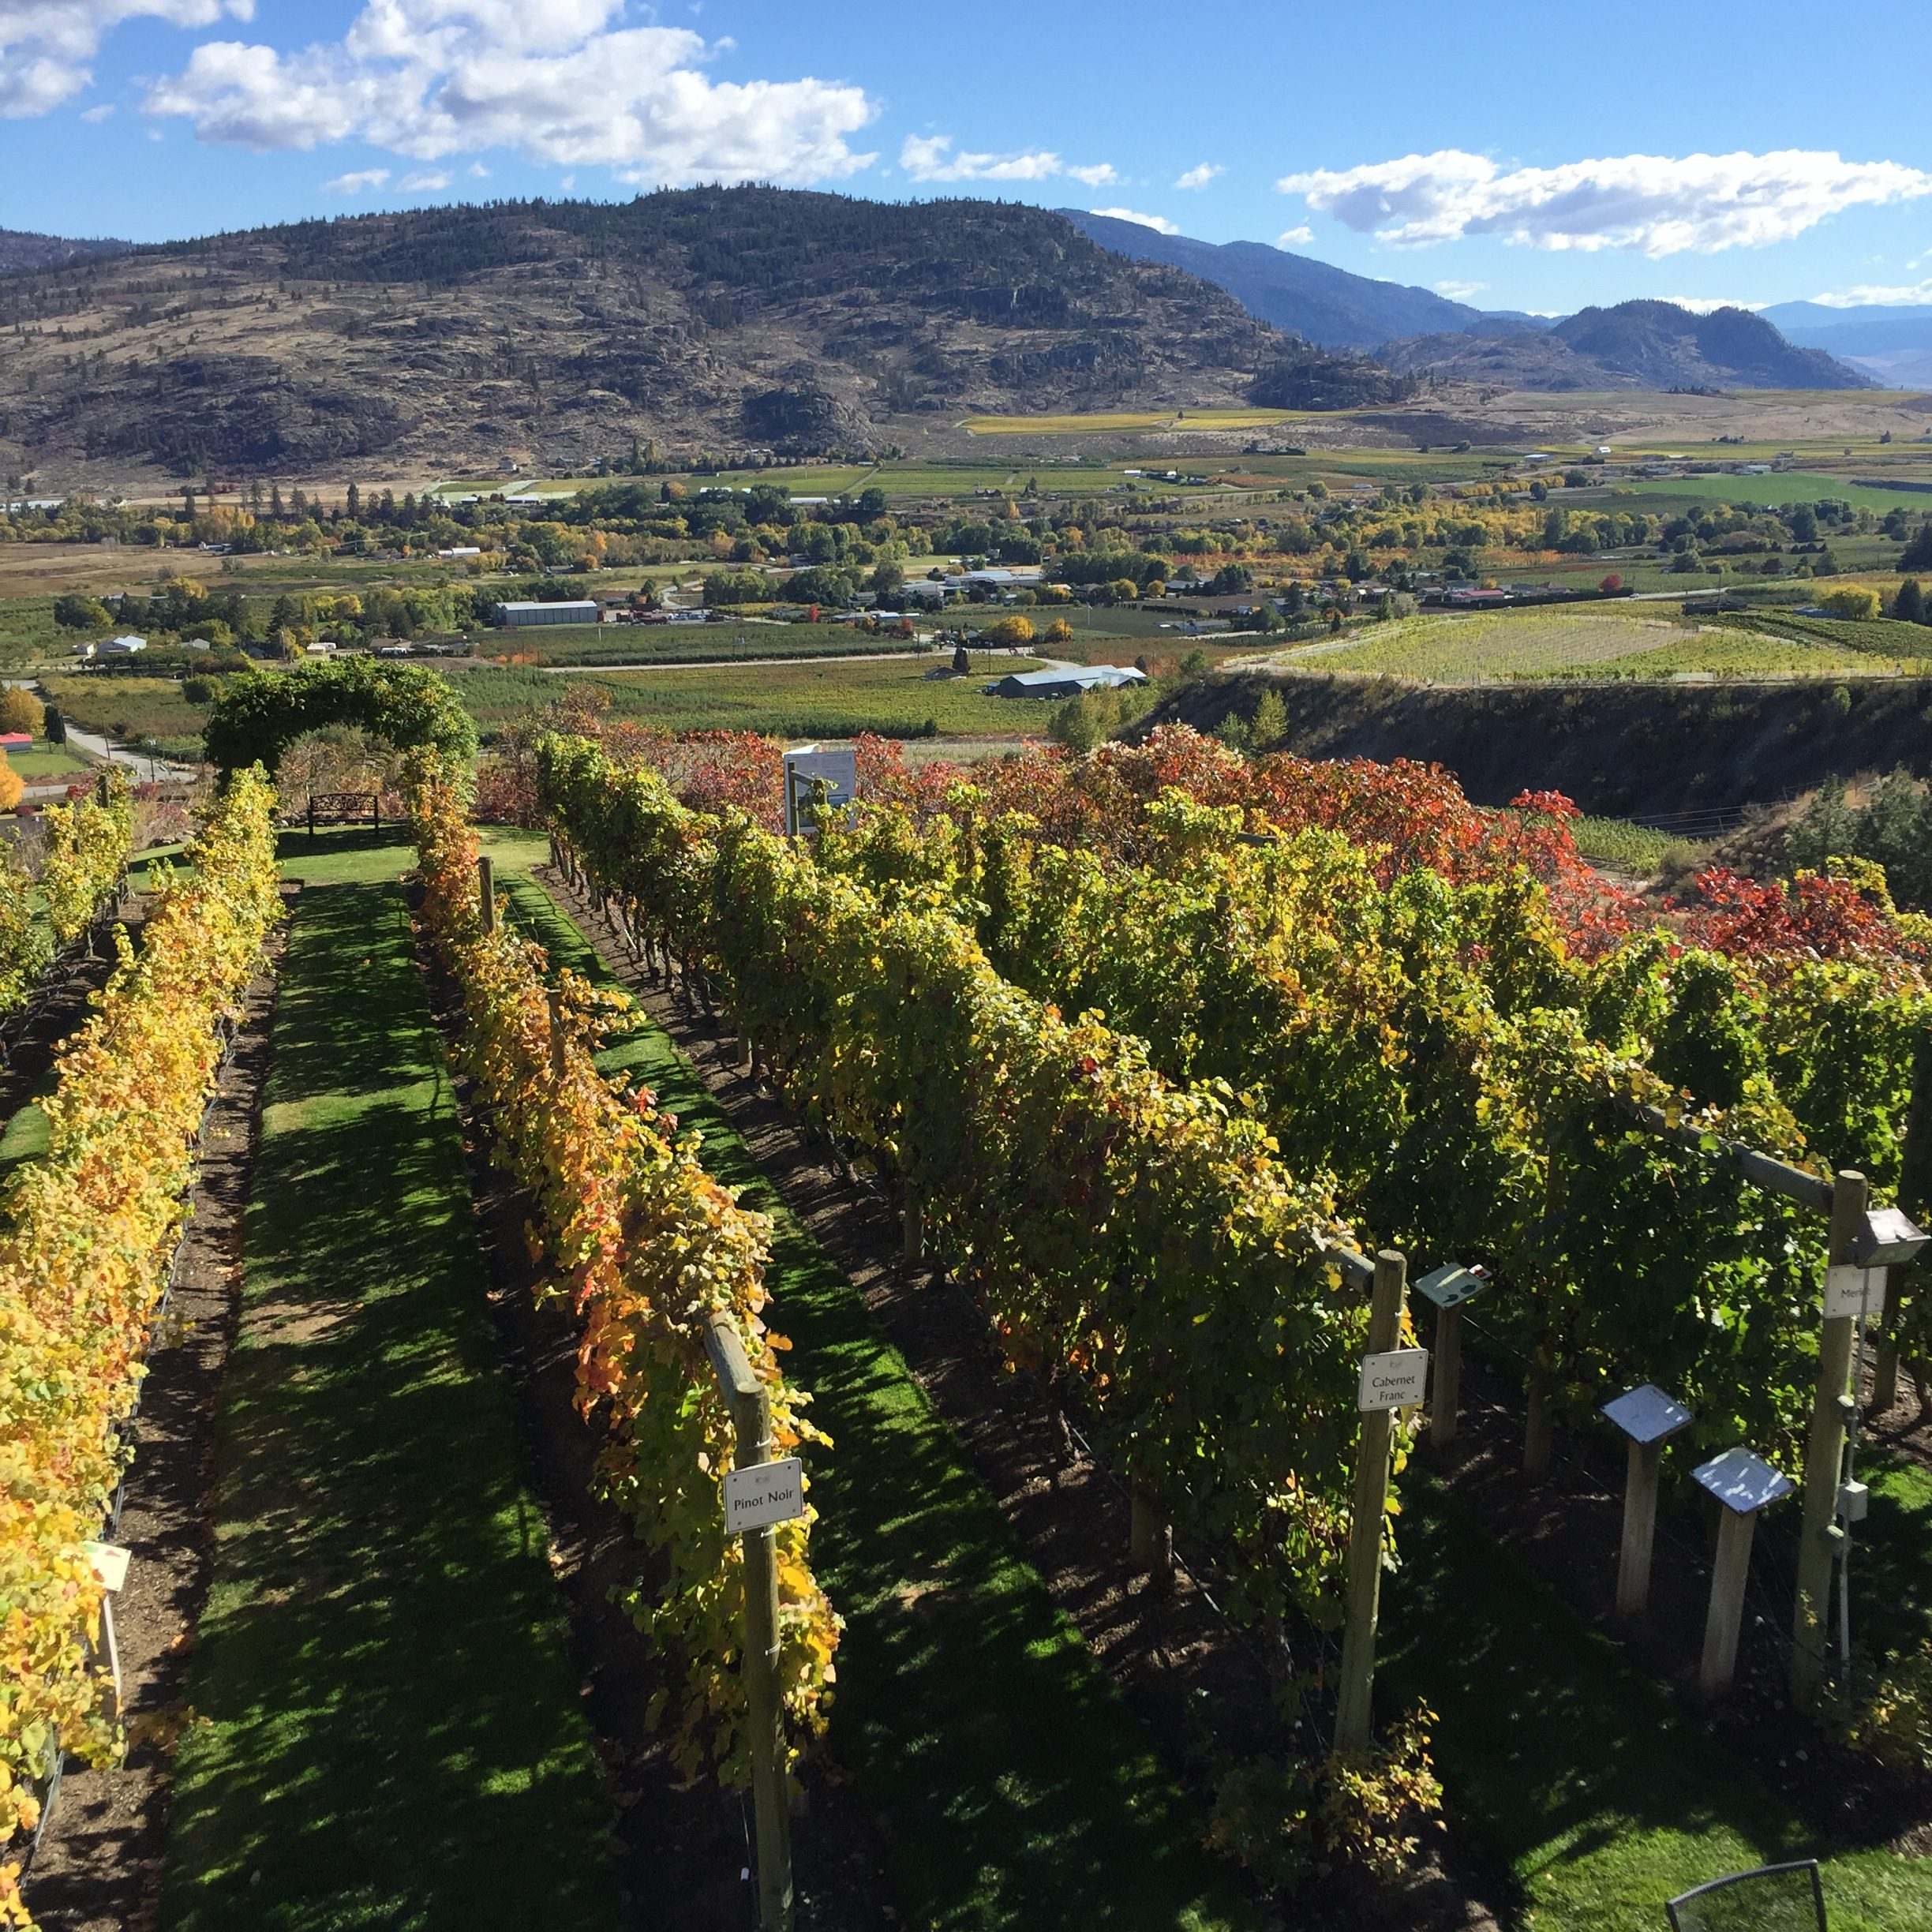 Rediscovering Favourite Wines – Tinhorn Creek Vineyards